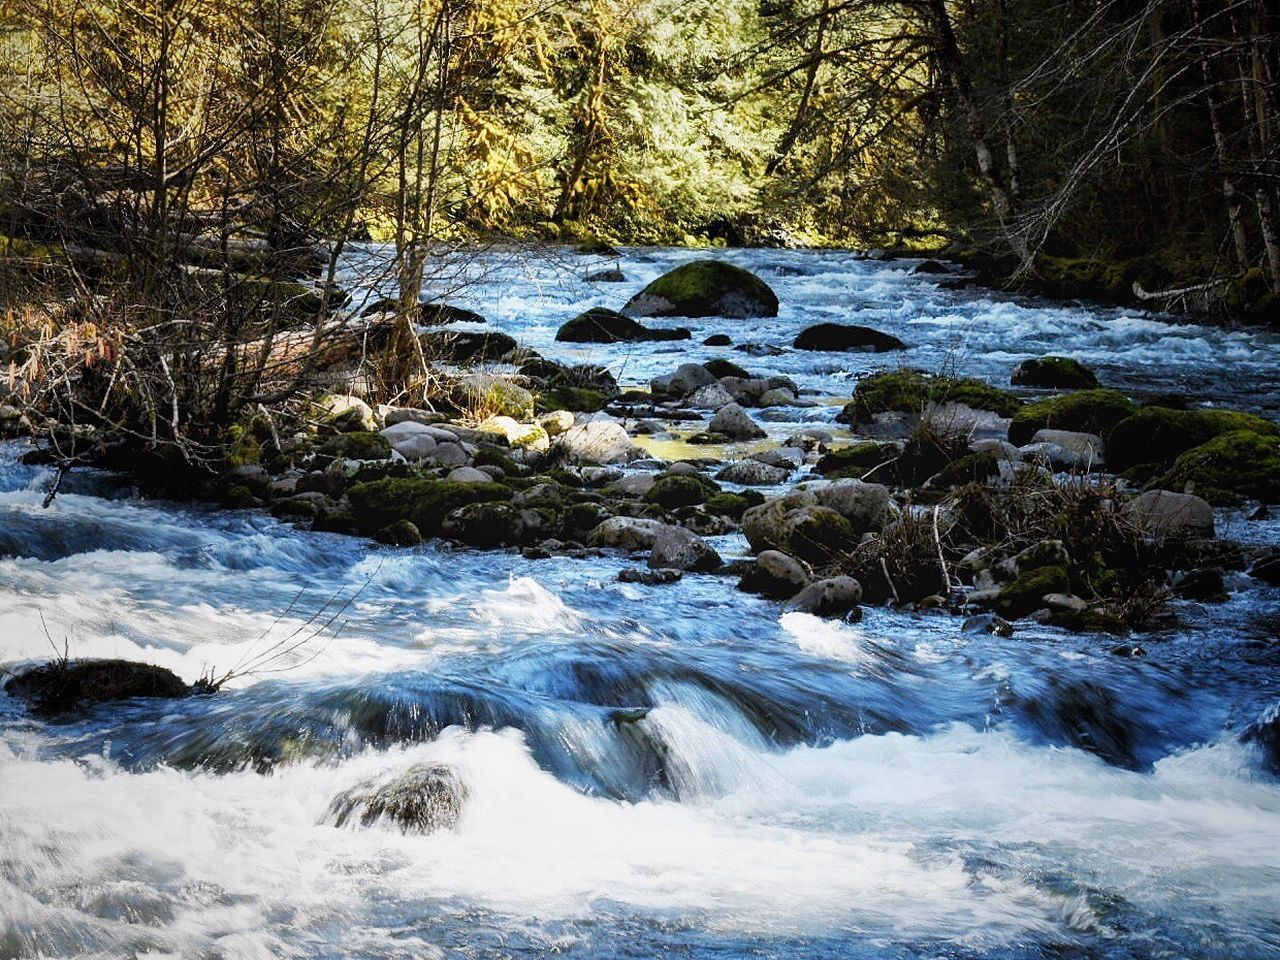 Water Nature Beauty In Nature Tranquil Scene Forest No People River Outdoors Tree Moss Scenics Tranquility Landscape Day Waterfall Sky Riverside Forest Photography Exploration Adventure Nature_collection Nature Photography Tranquility Tree Beauty In Nature